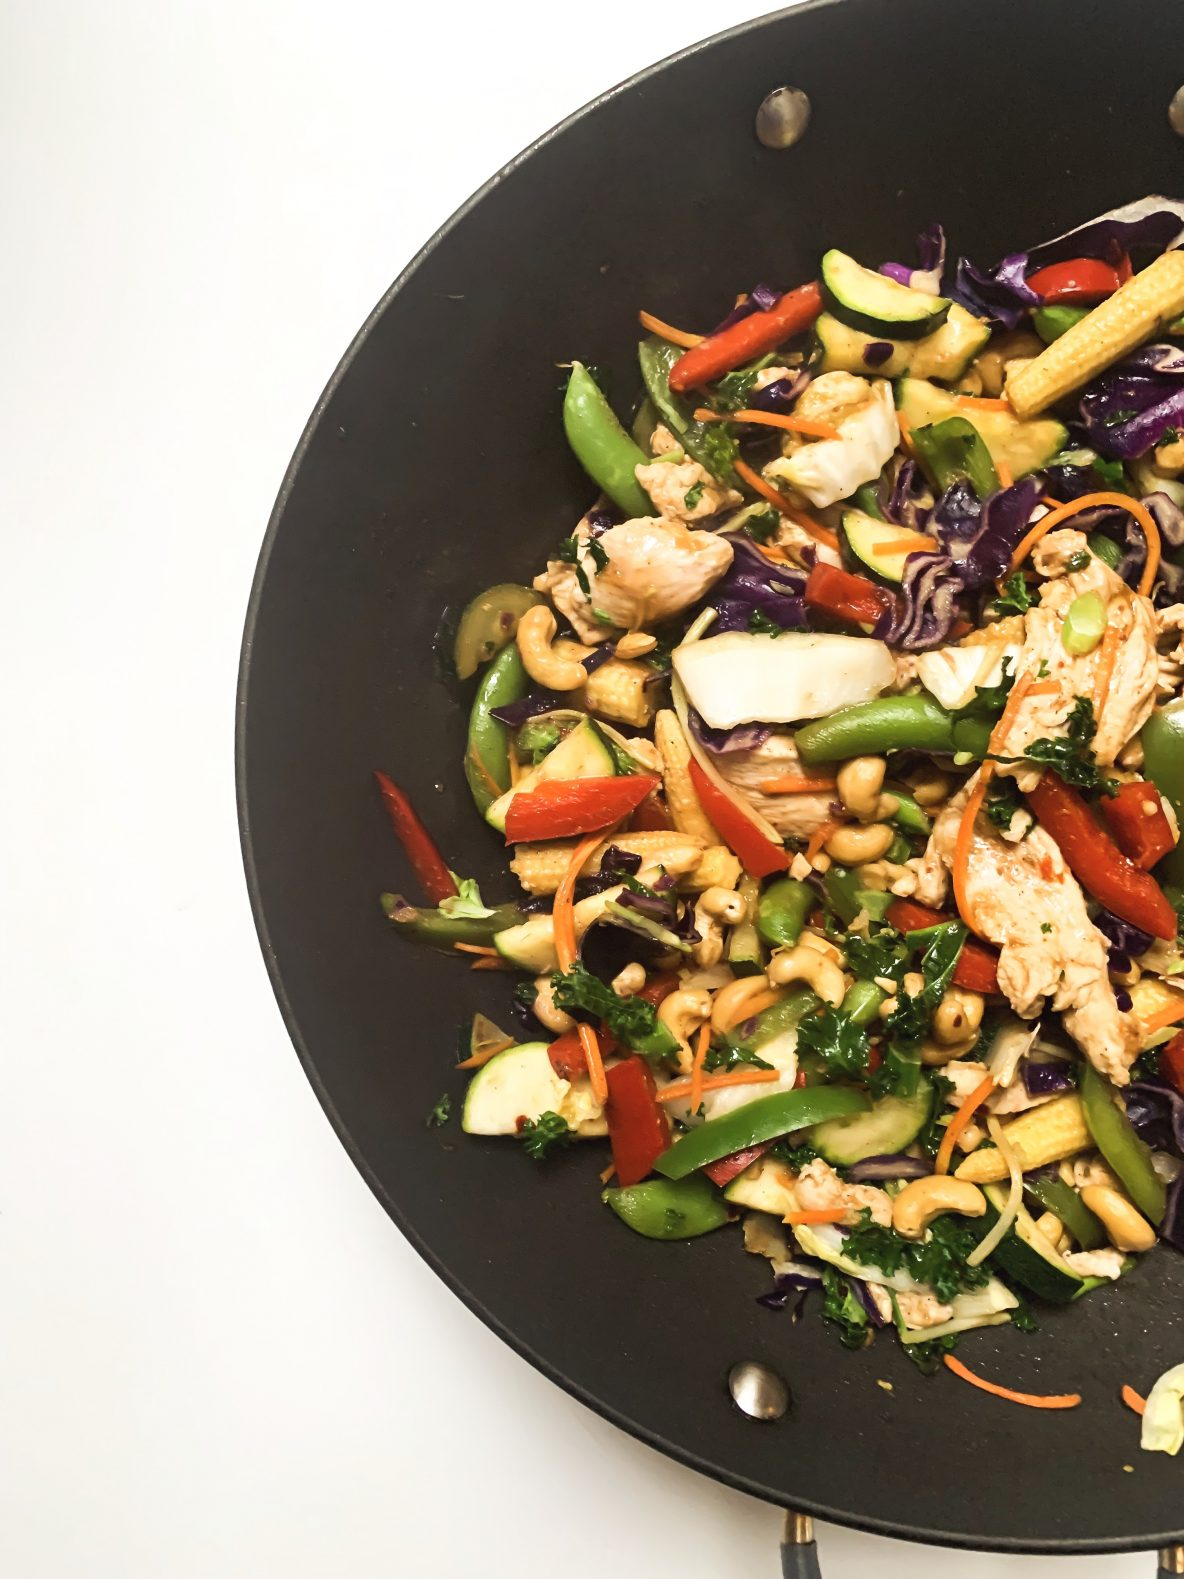 banish-the-bloat-wholesome-heart-quick-dinner